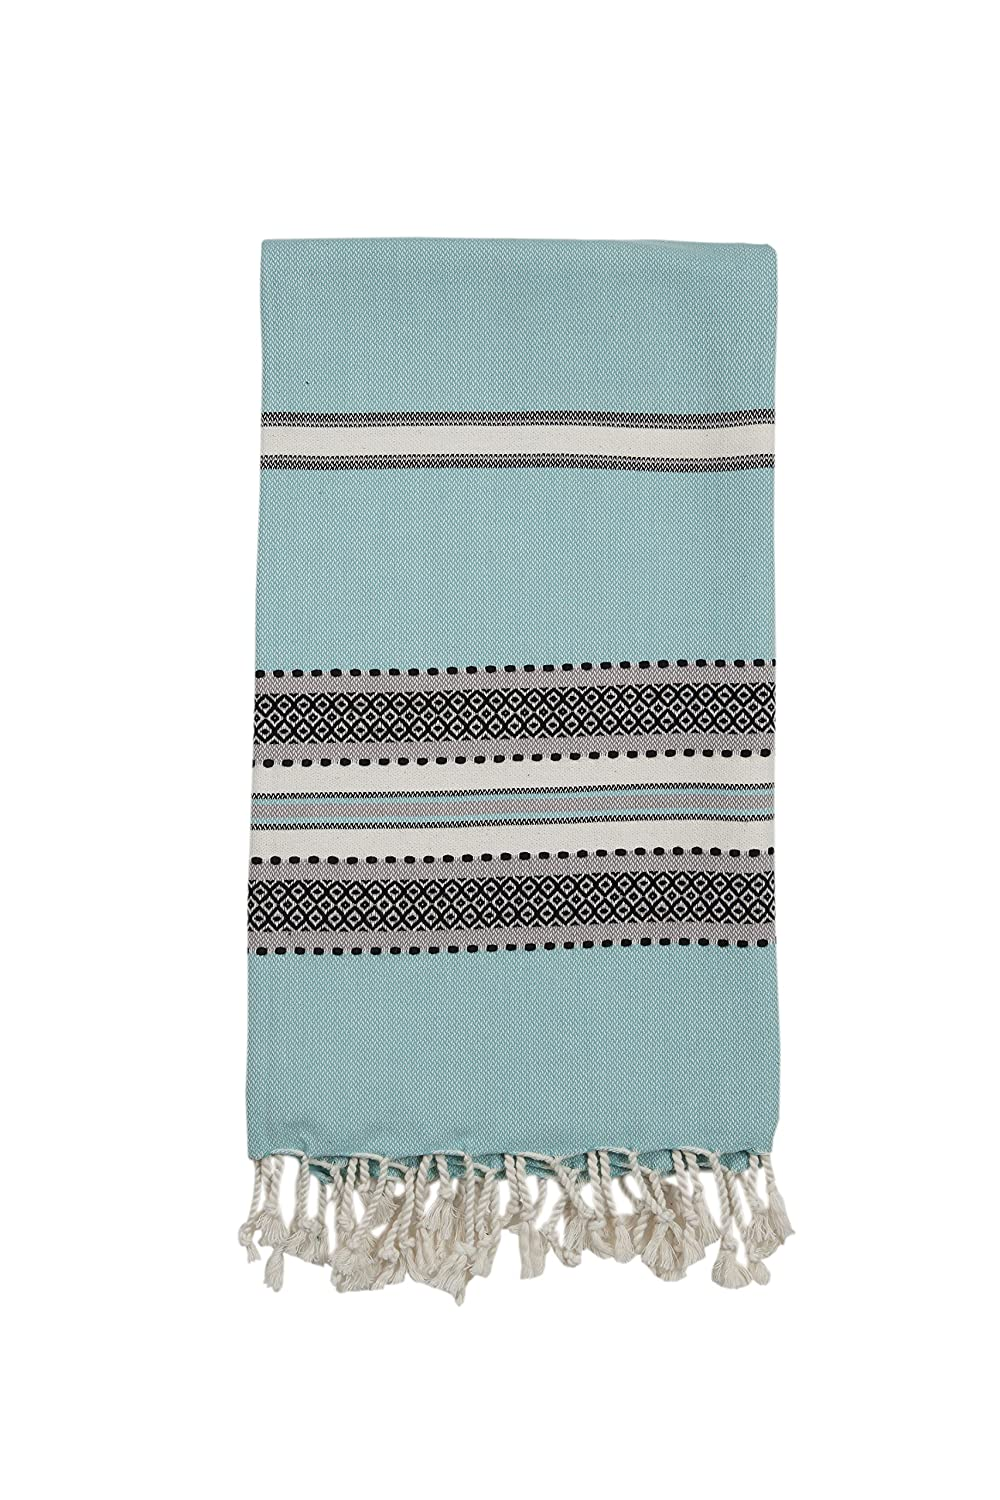 InfuseZen Large Turkish Towel Oversized Beach Or Bath Mint Blue And Black